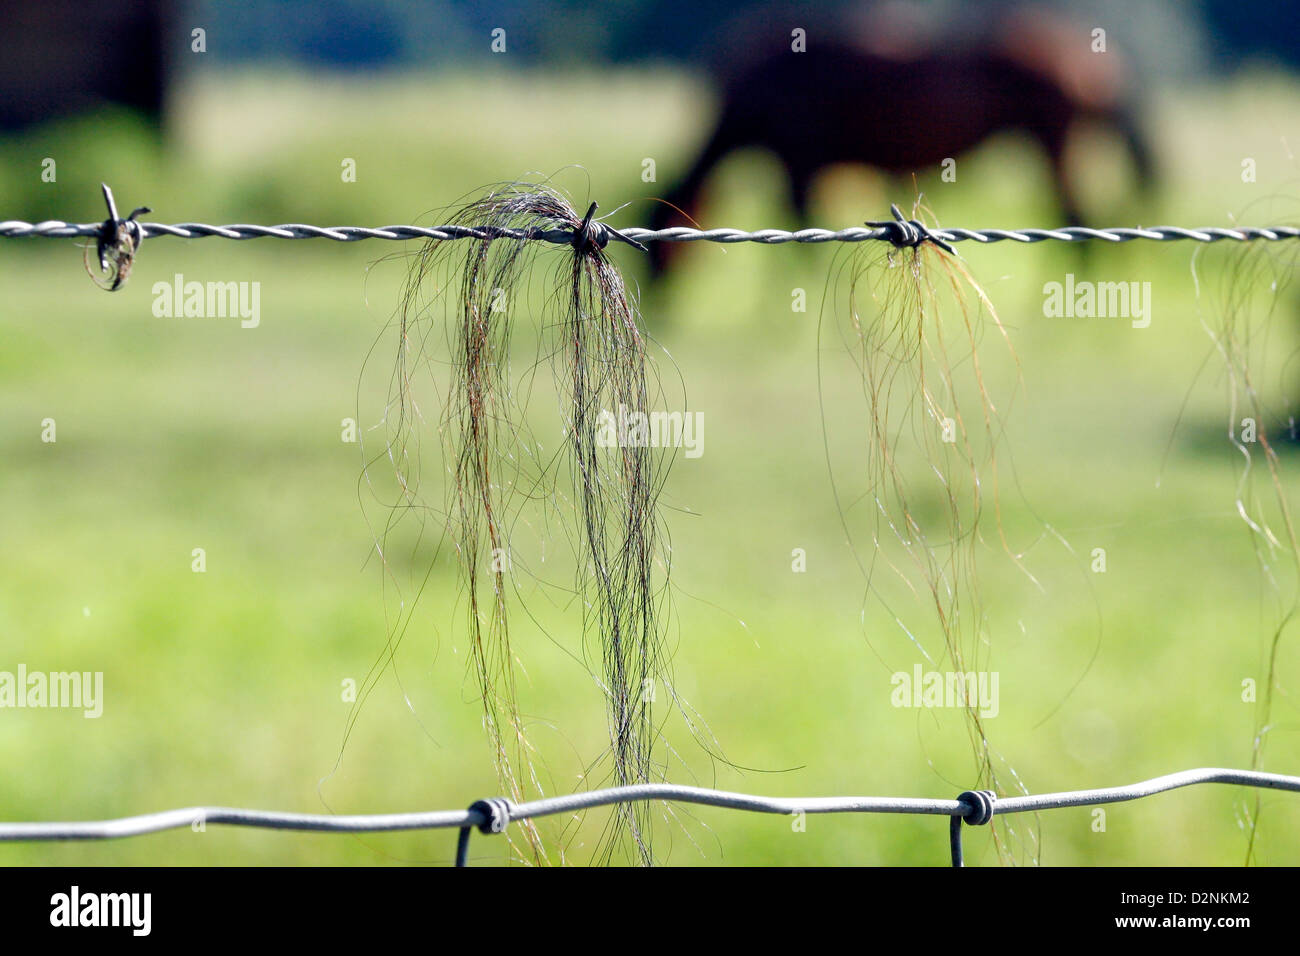 Closeup of horse hair caught on barb wire. - Stock Image